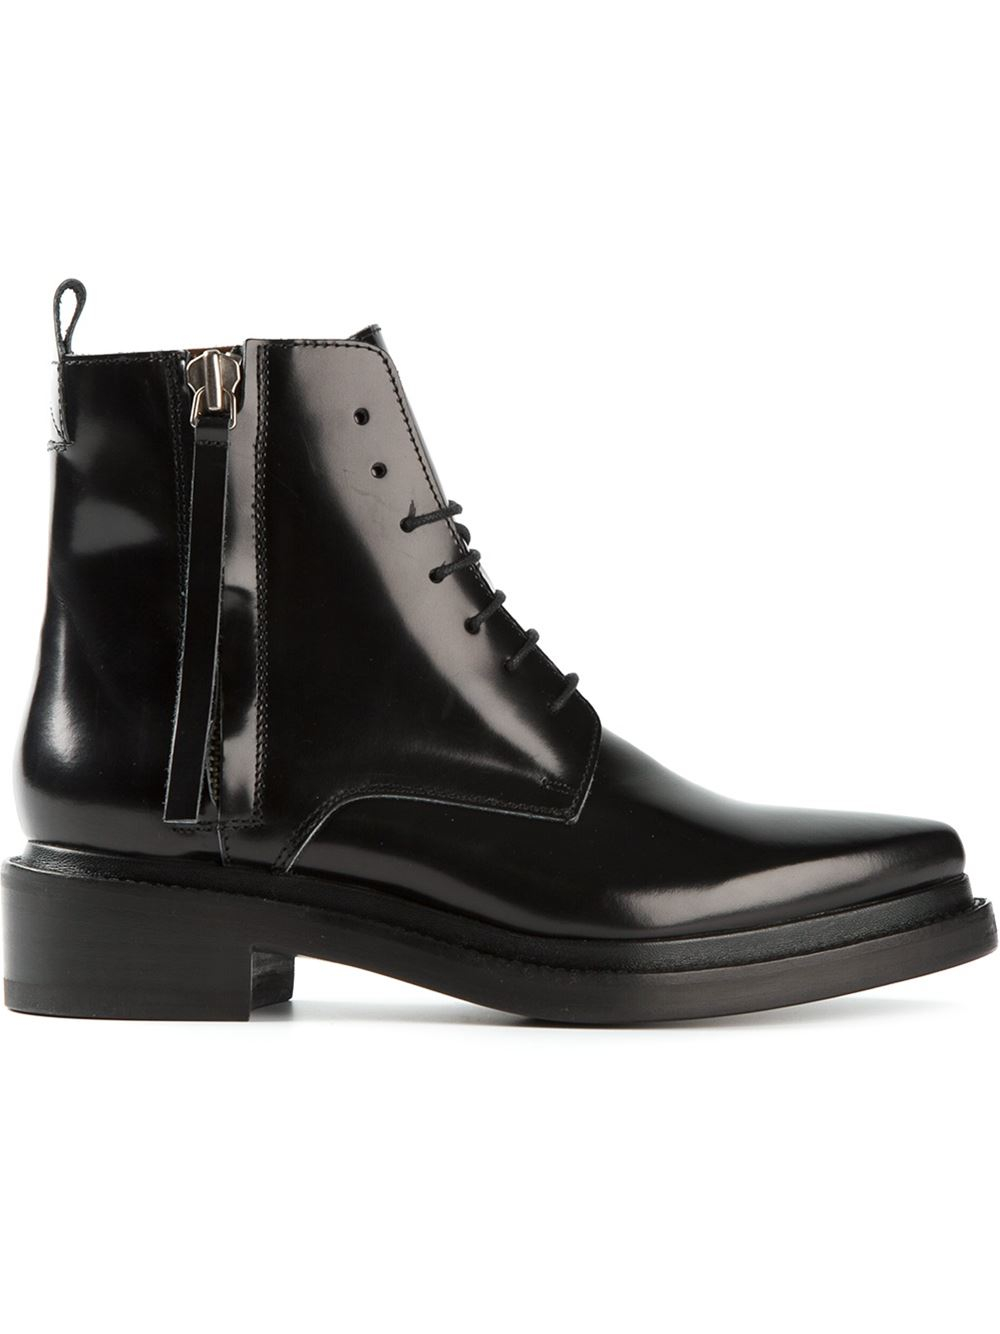 01695bfdc946 Lyst - Acne Studios Linden Ankle Boots in Black